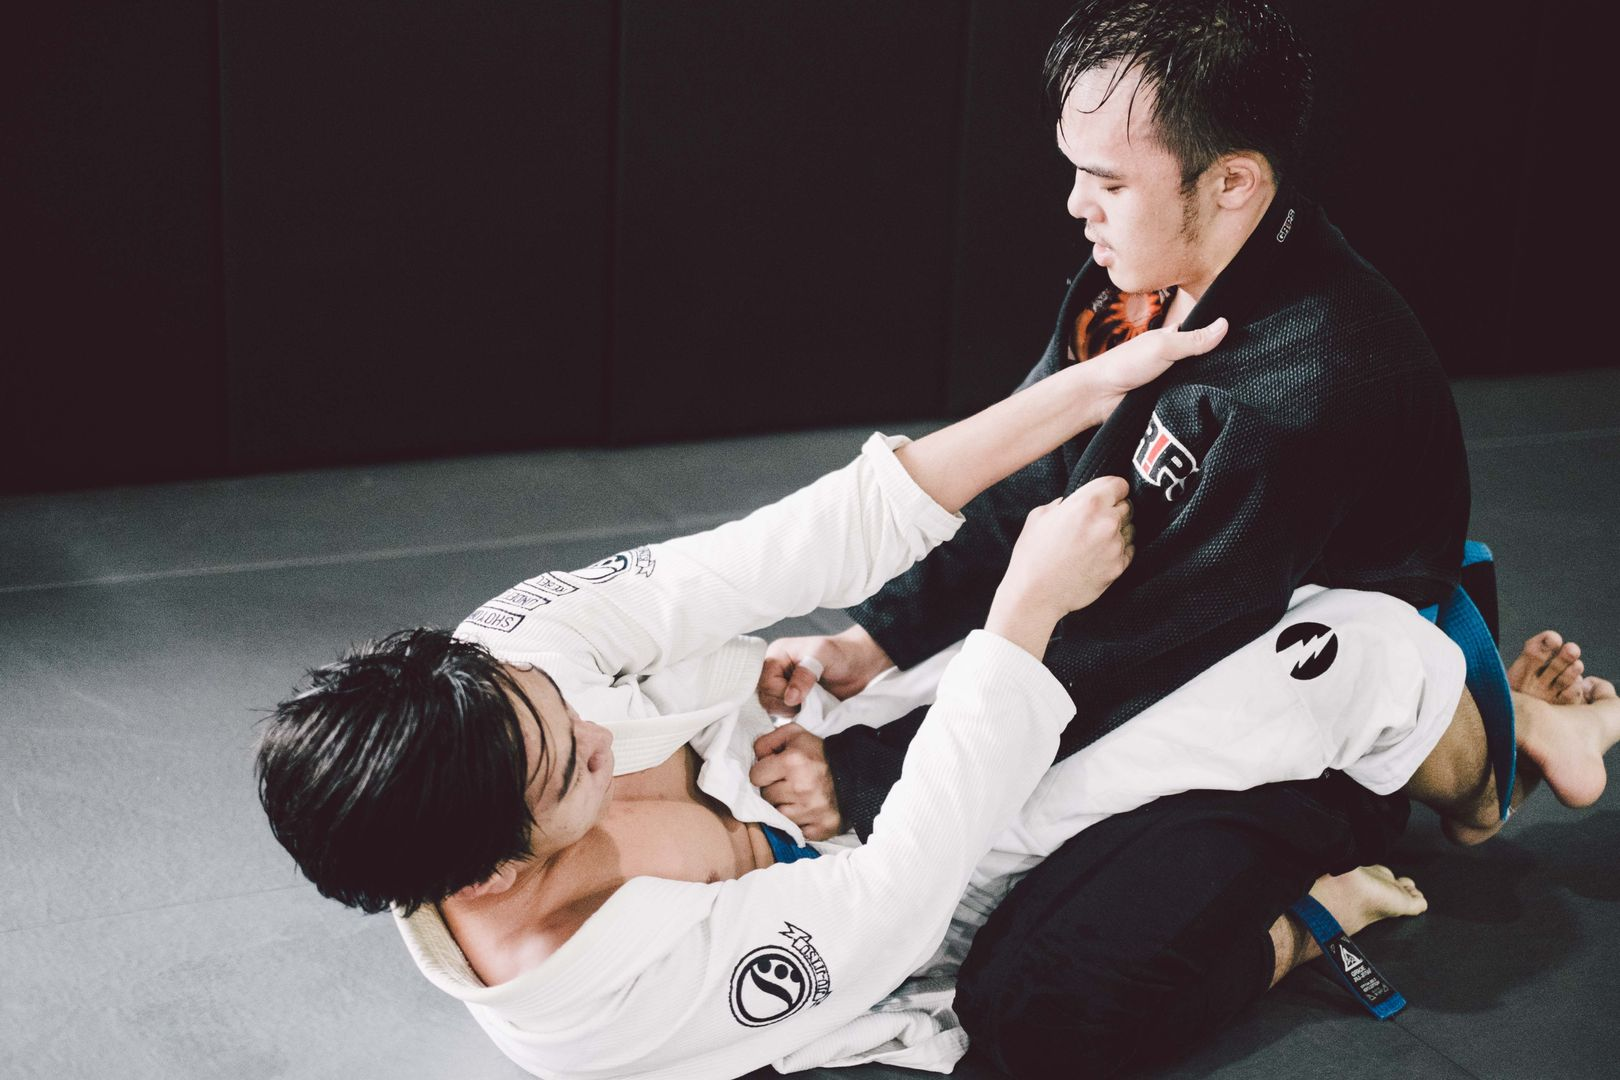 In BJJ, a smaller person can overcome a stronger, bigger opponent with good technique.